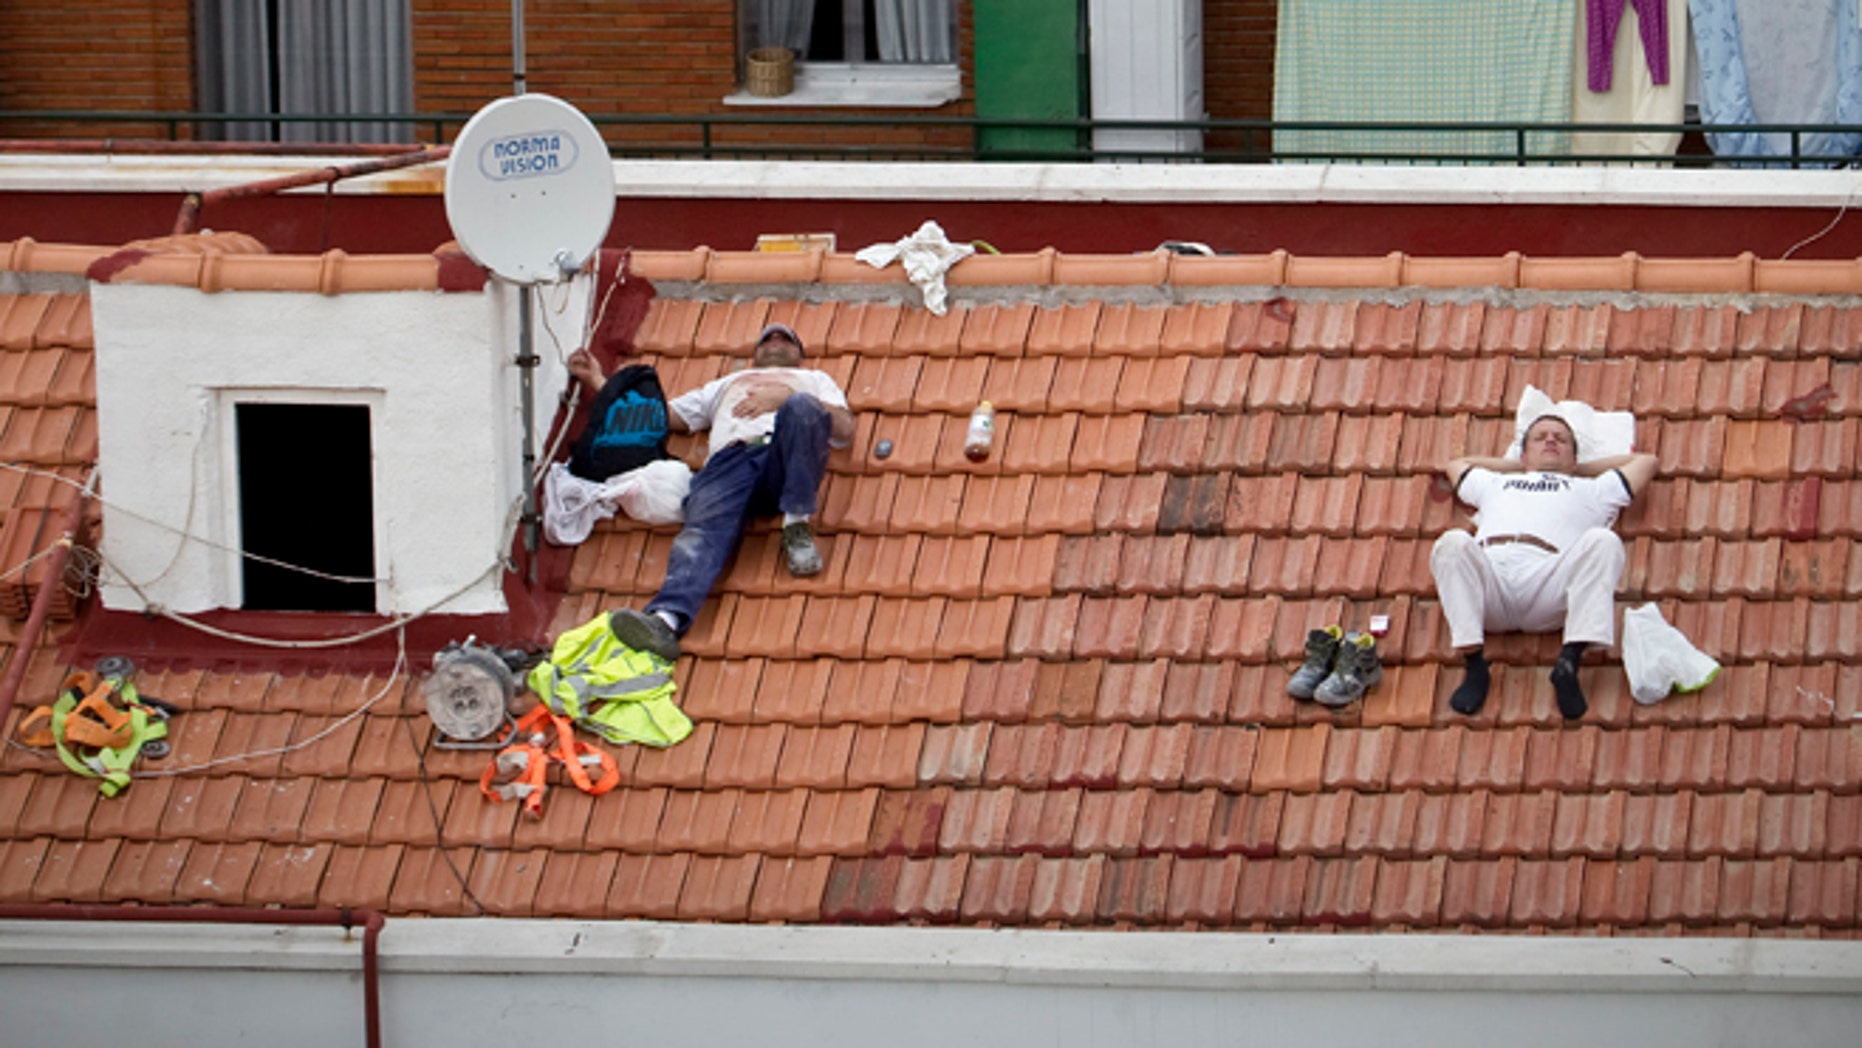 In this Oct. 10, 2012 file photo, workers take a nap on a roof in Madrid, Spain.